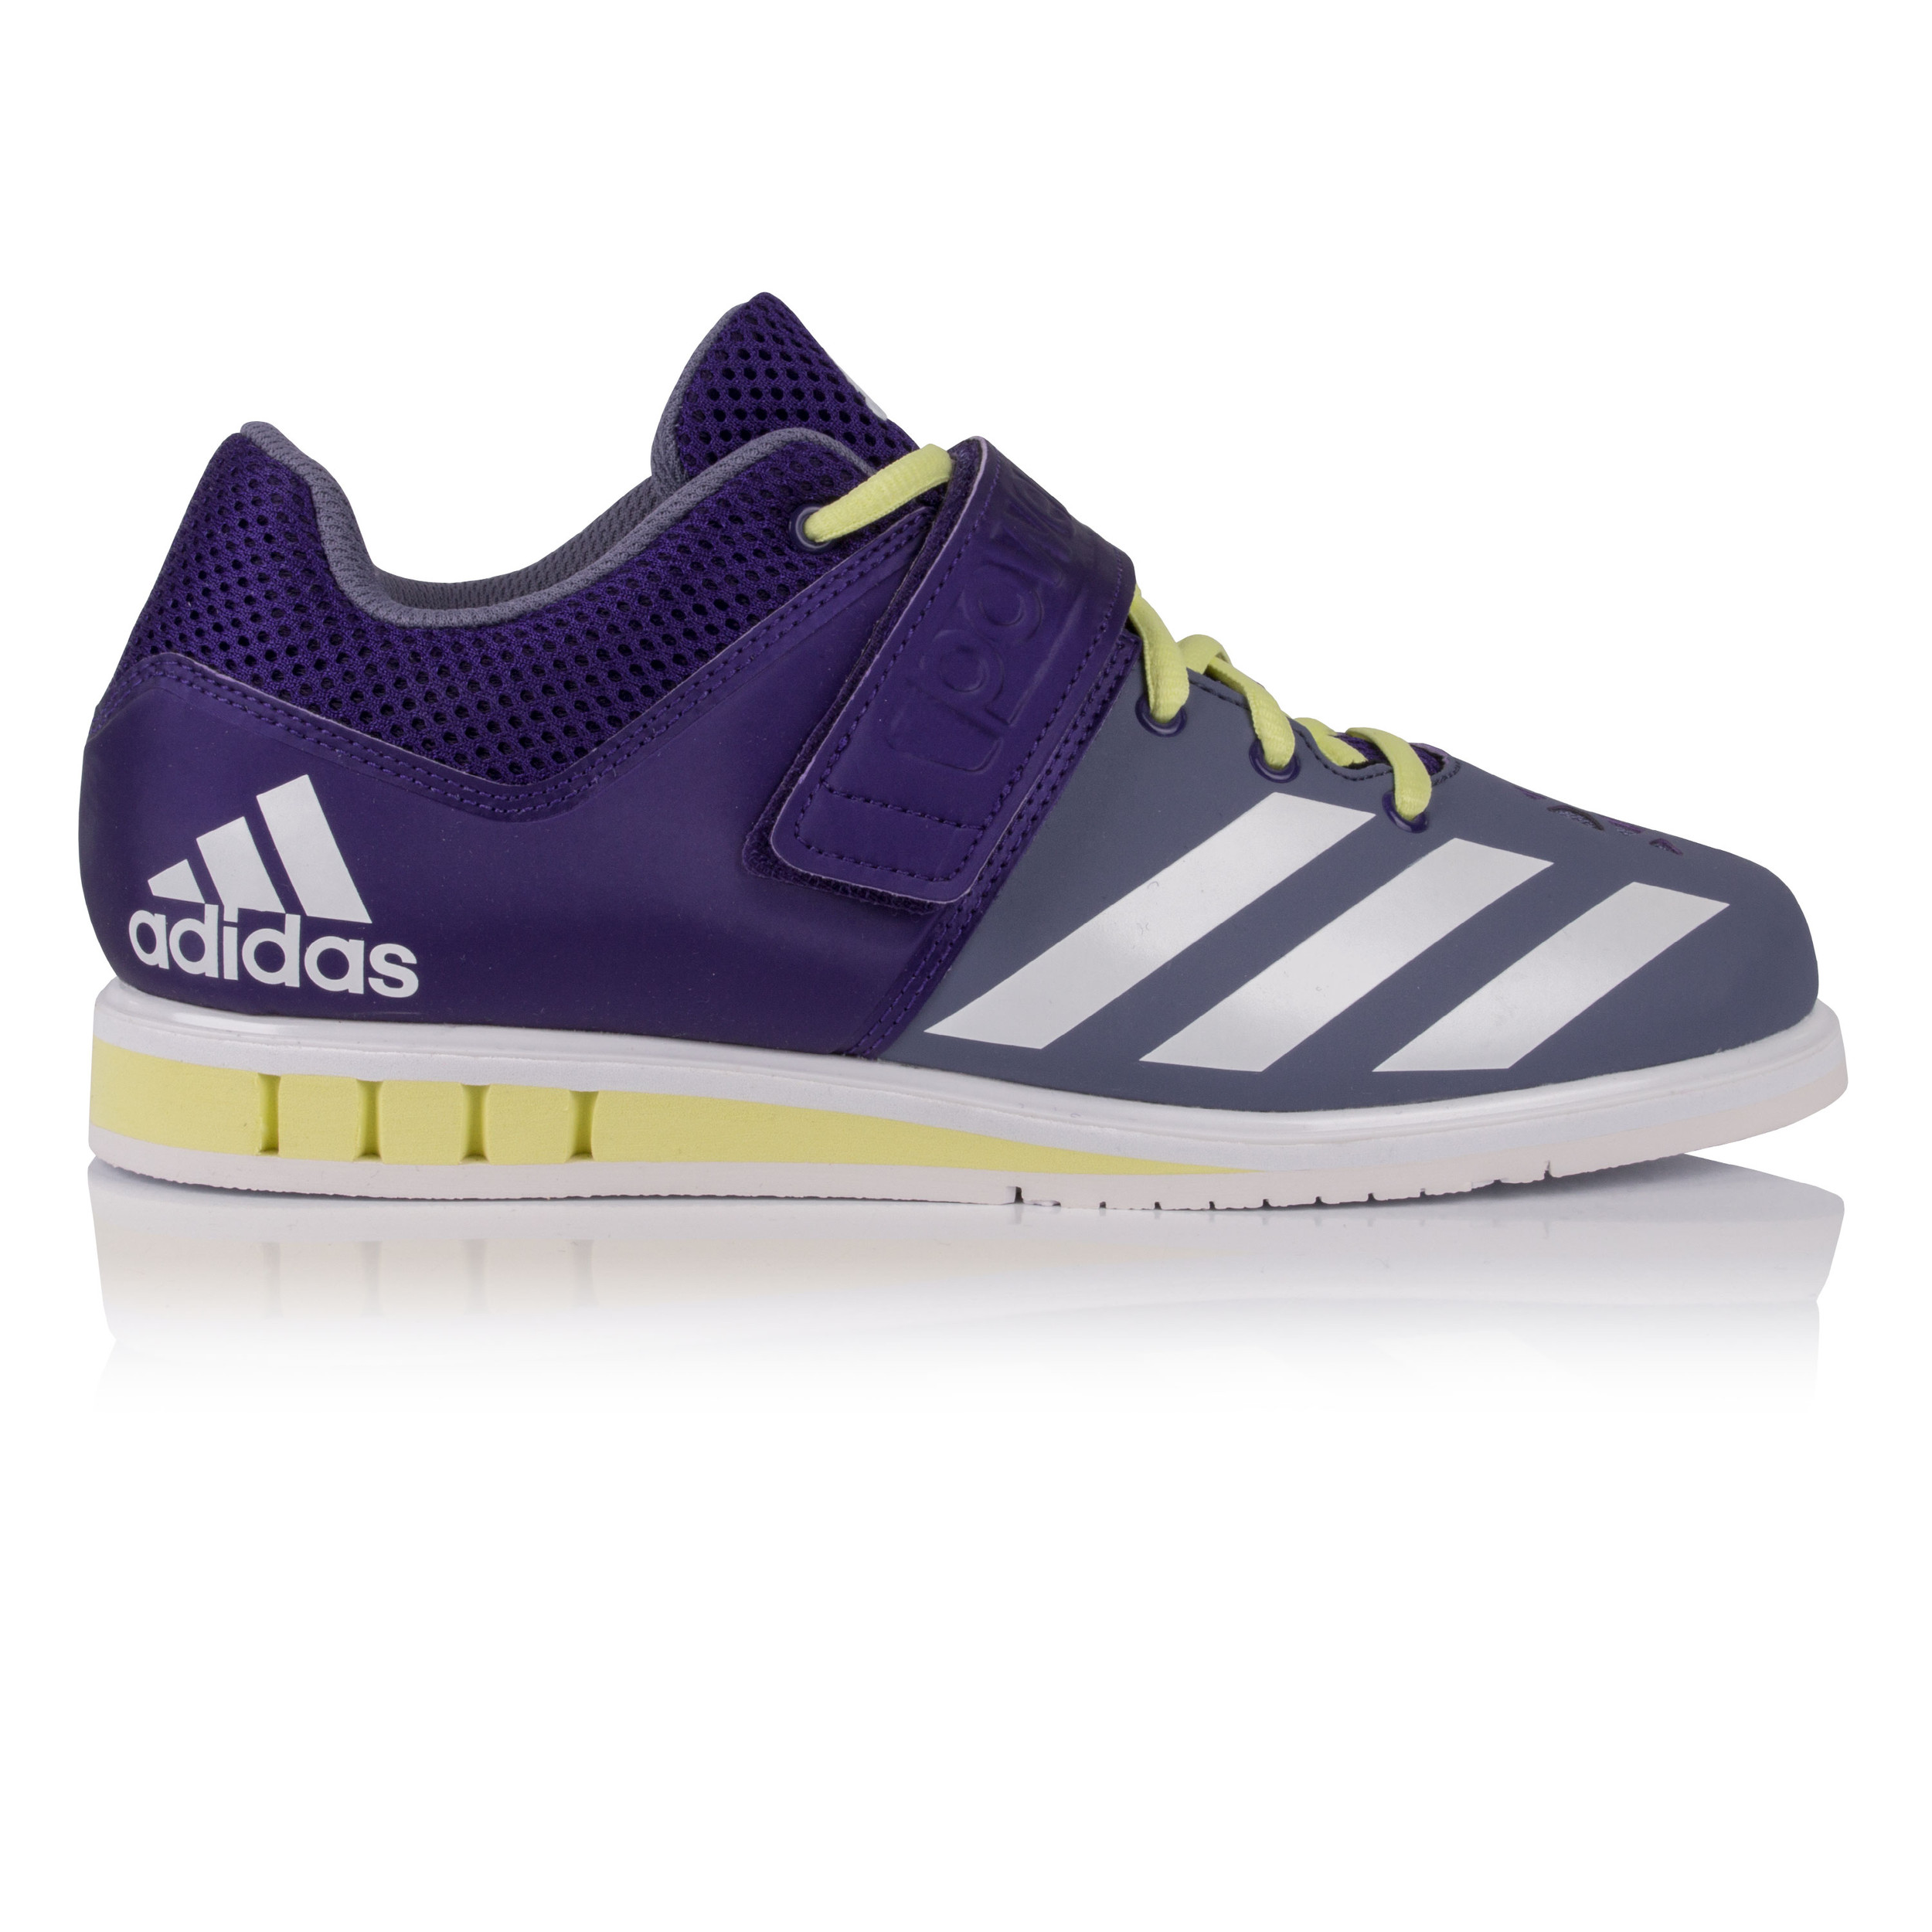 3ce4599d0595 Details about adidas Womens Powerlift 3 Weightlifting Shoes Purple Sports  Breathable